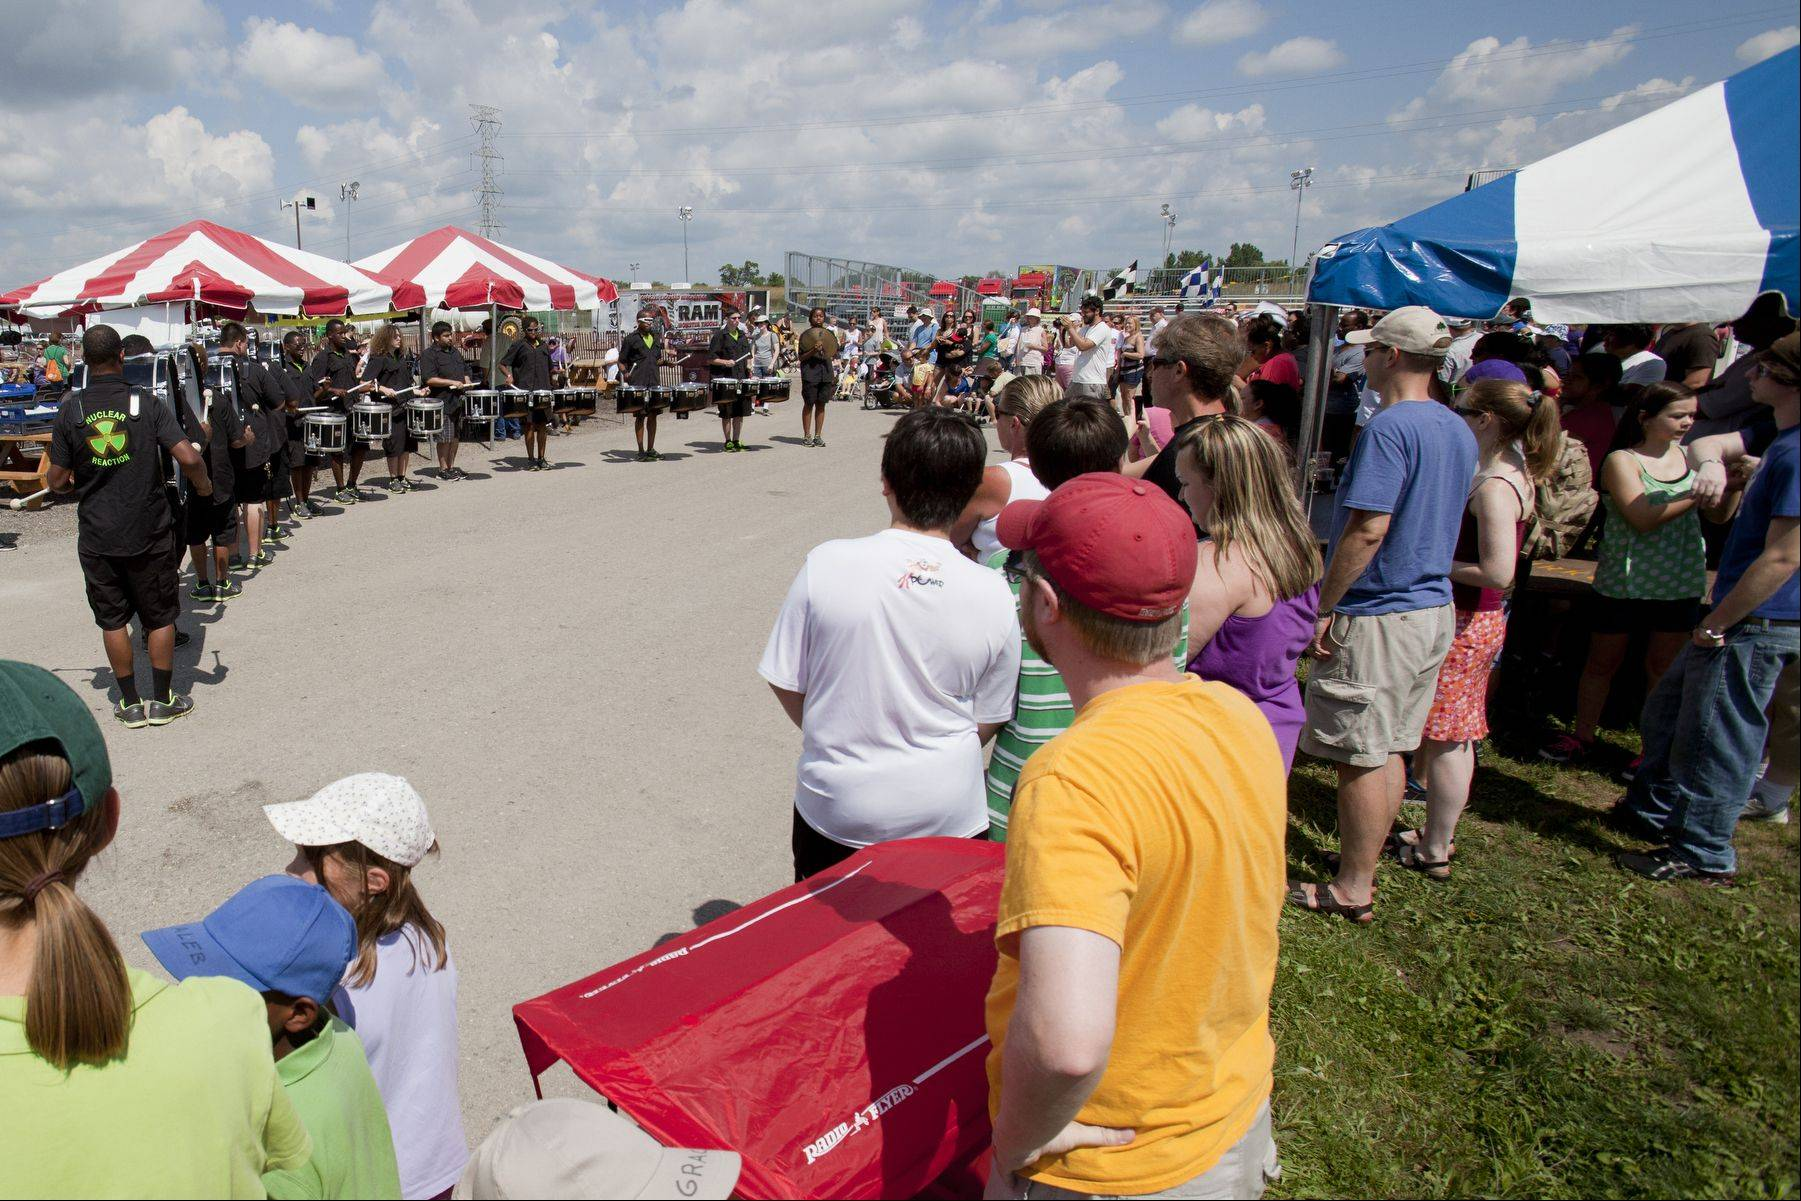 Nuclear Reaction drum line pumps up the crowd at the Lake County Fair on Saturday.